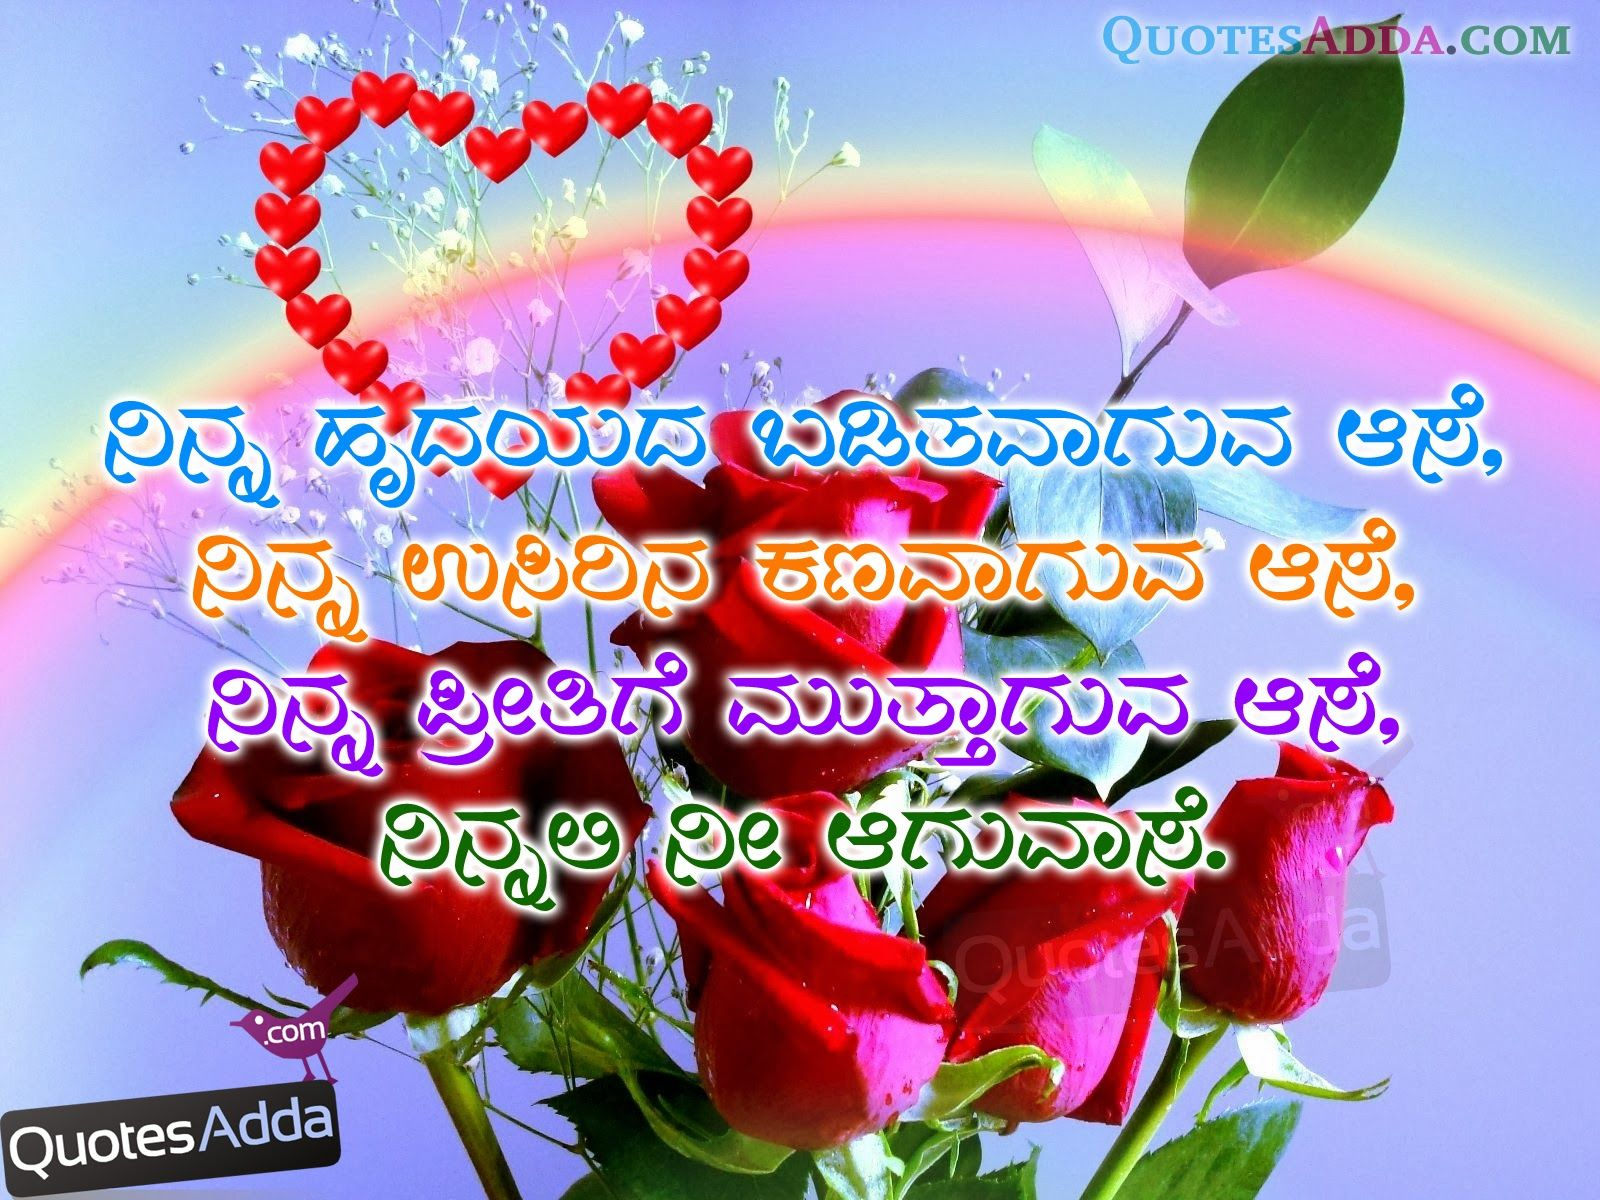 Love Quotes Kannada Images Love You Messages Love Quotes For Wife Romantic Love Messages